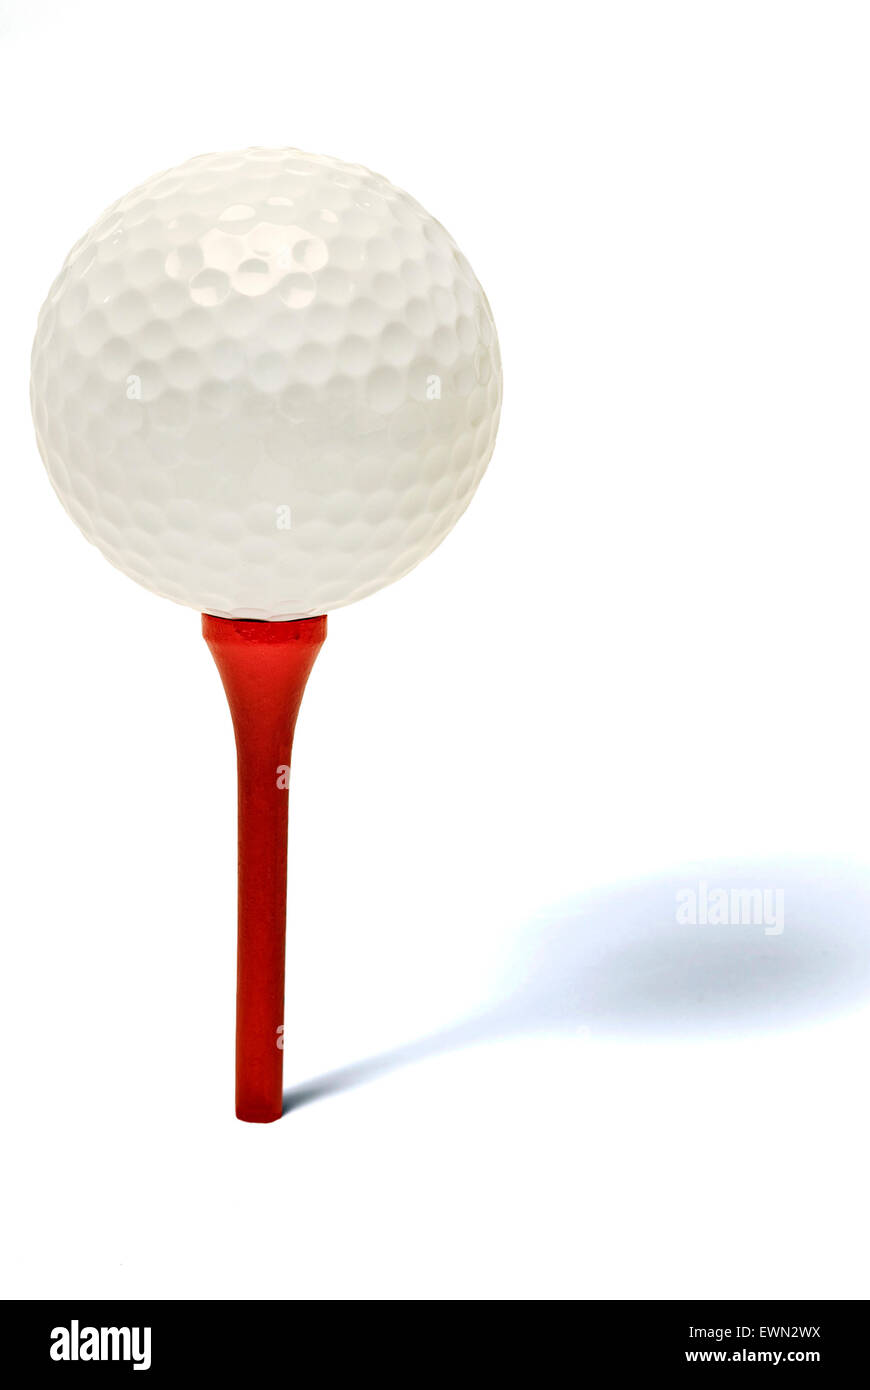 Golf ball on a red wooden tee on white background with a shadow showing depth - Stock Image